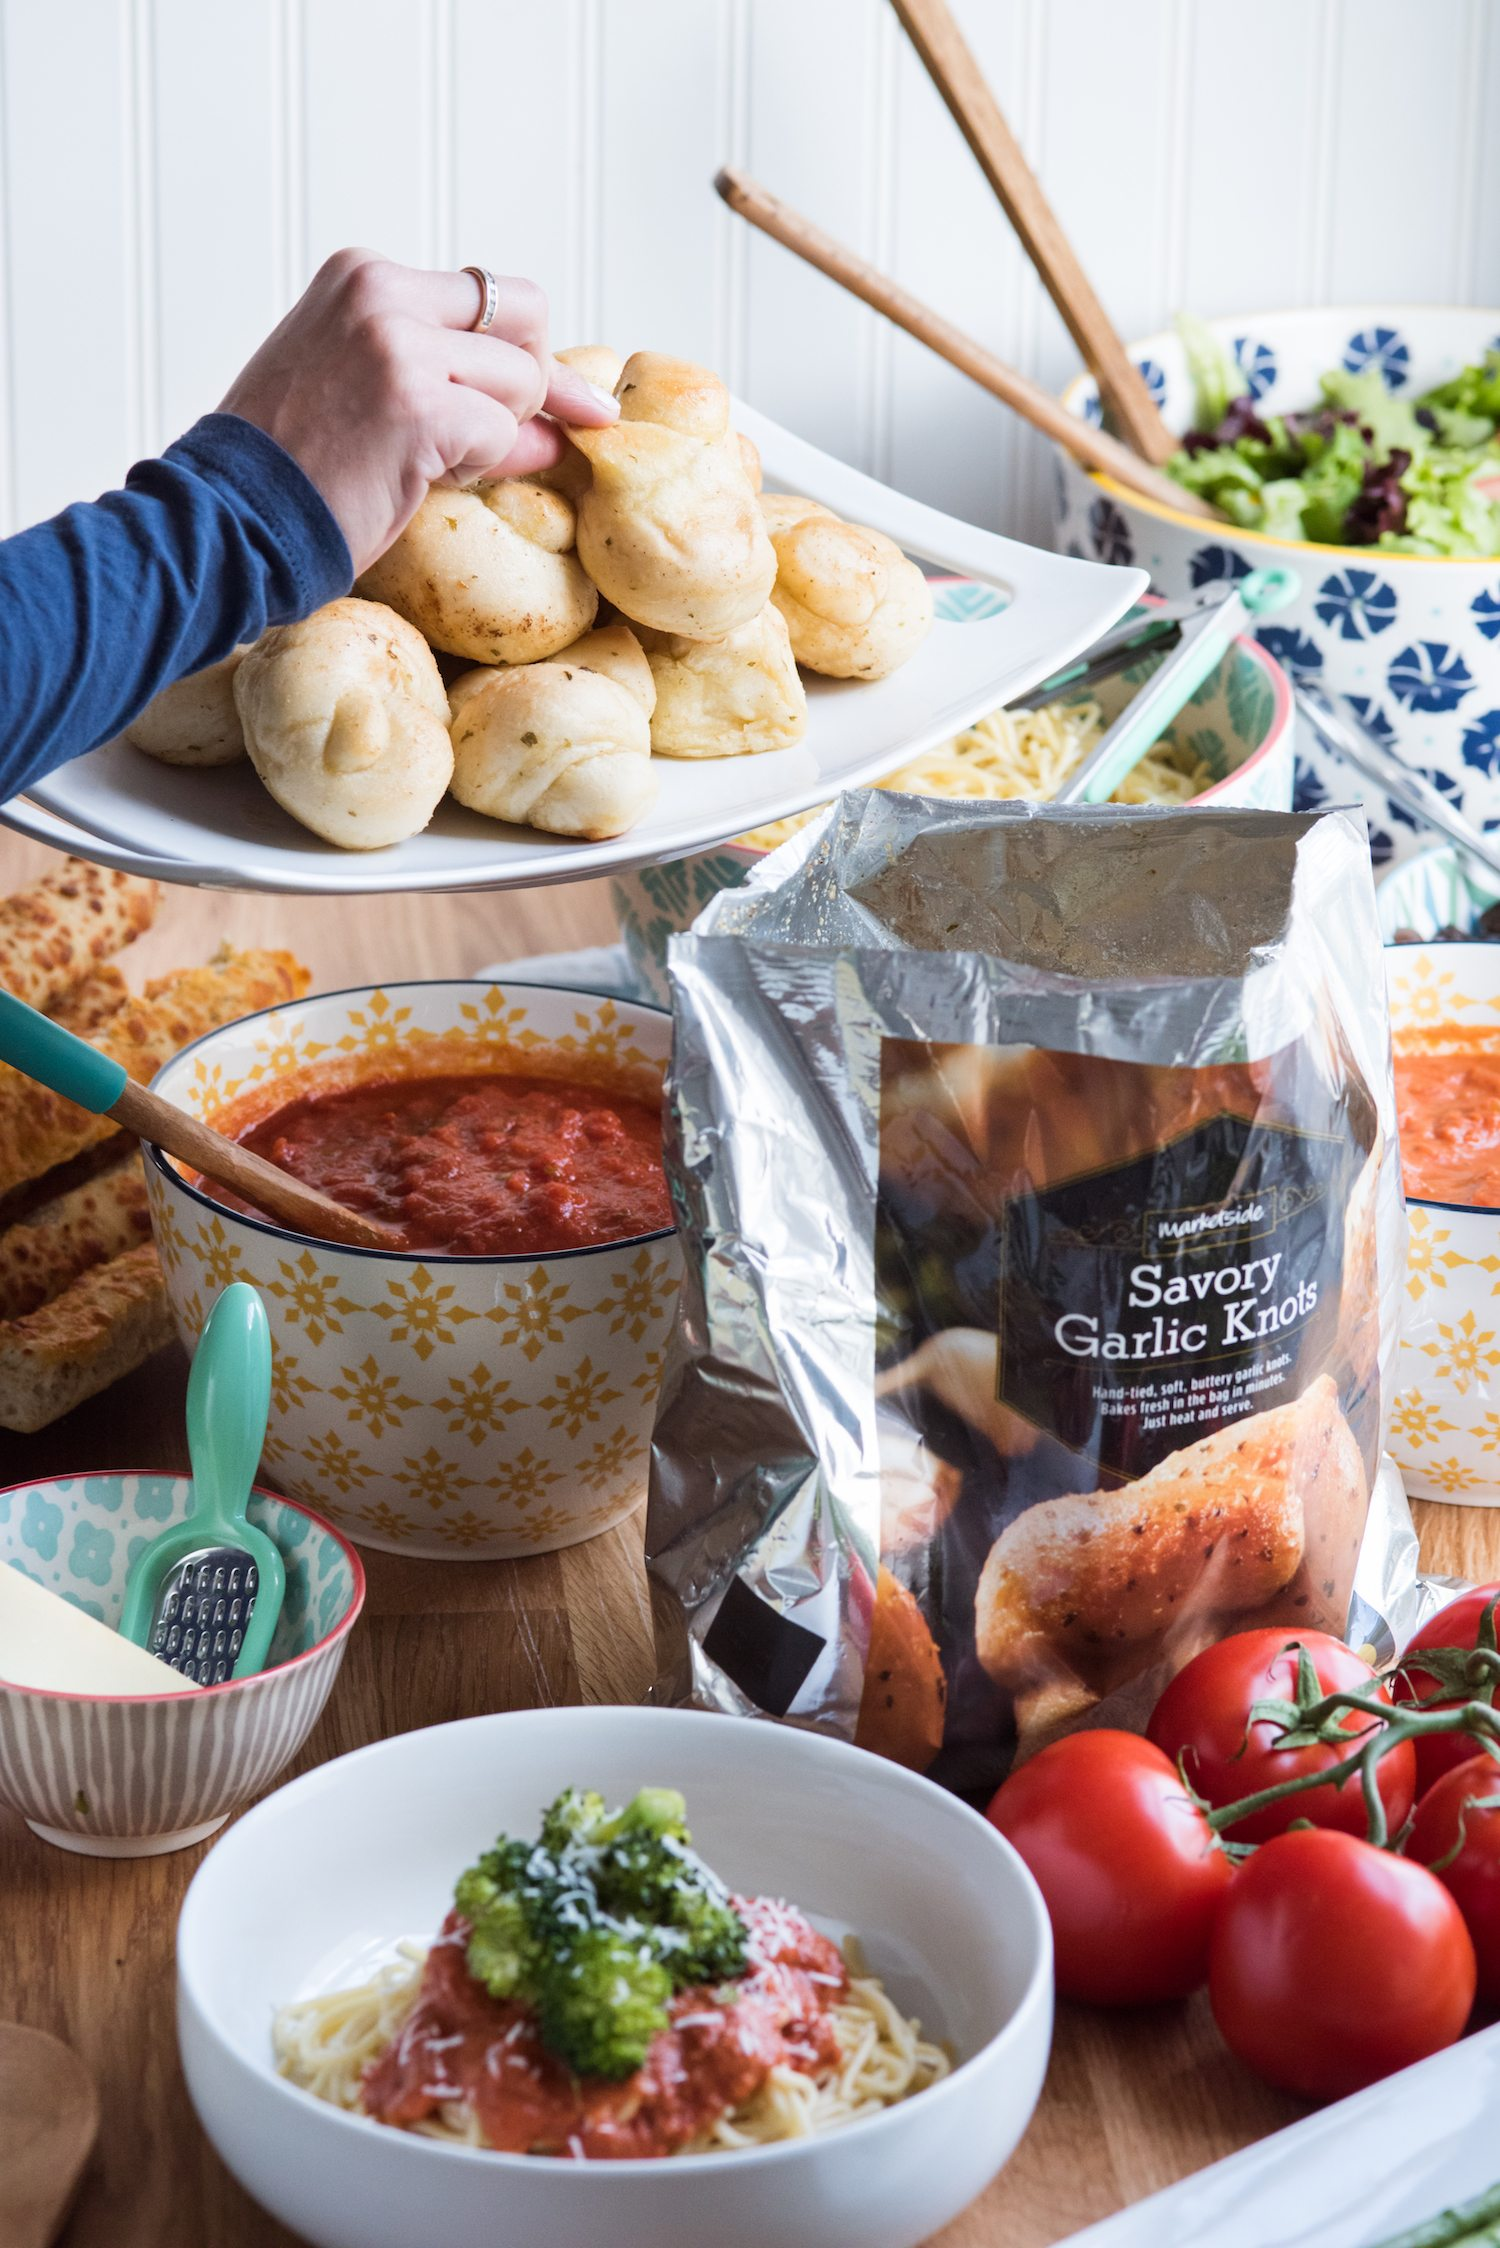 Entertain with a Make Your Own Pasta Bar   Click through to visit The Sweetest Occasion for entertaining tips, party ideas, party recipes and more from @cydconverse